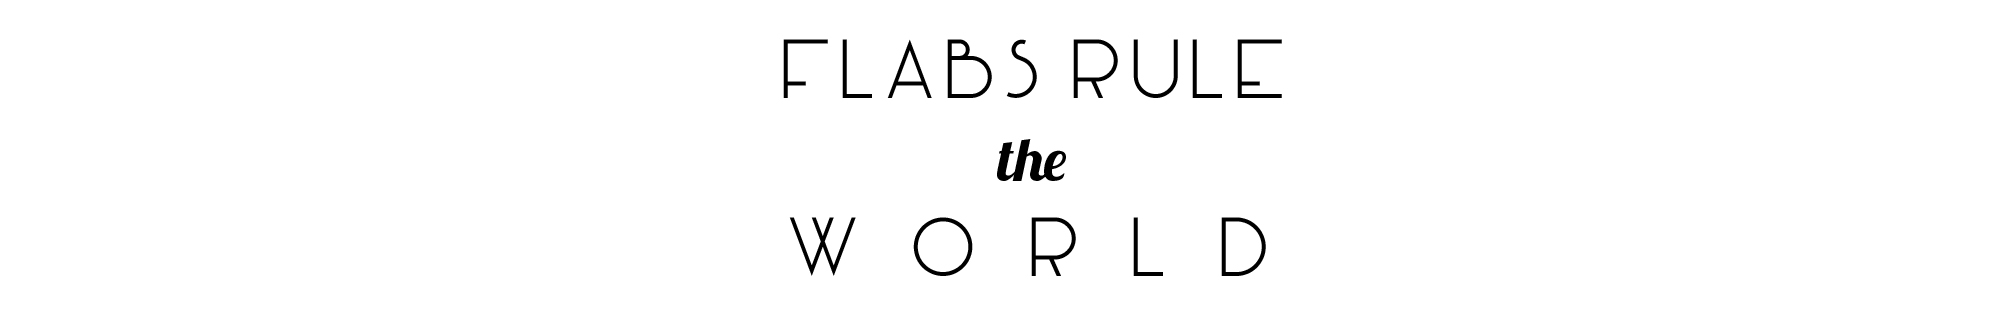 Flabs Rule the World!